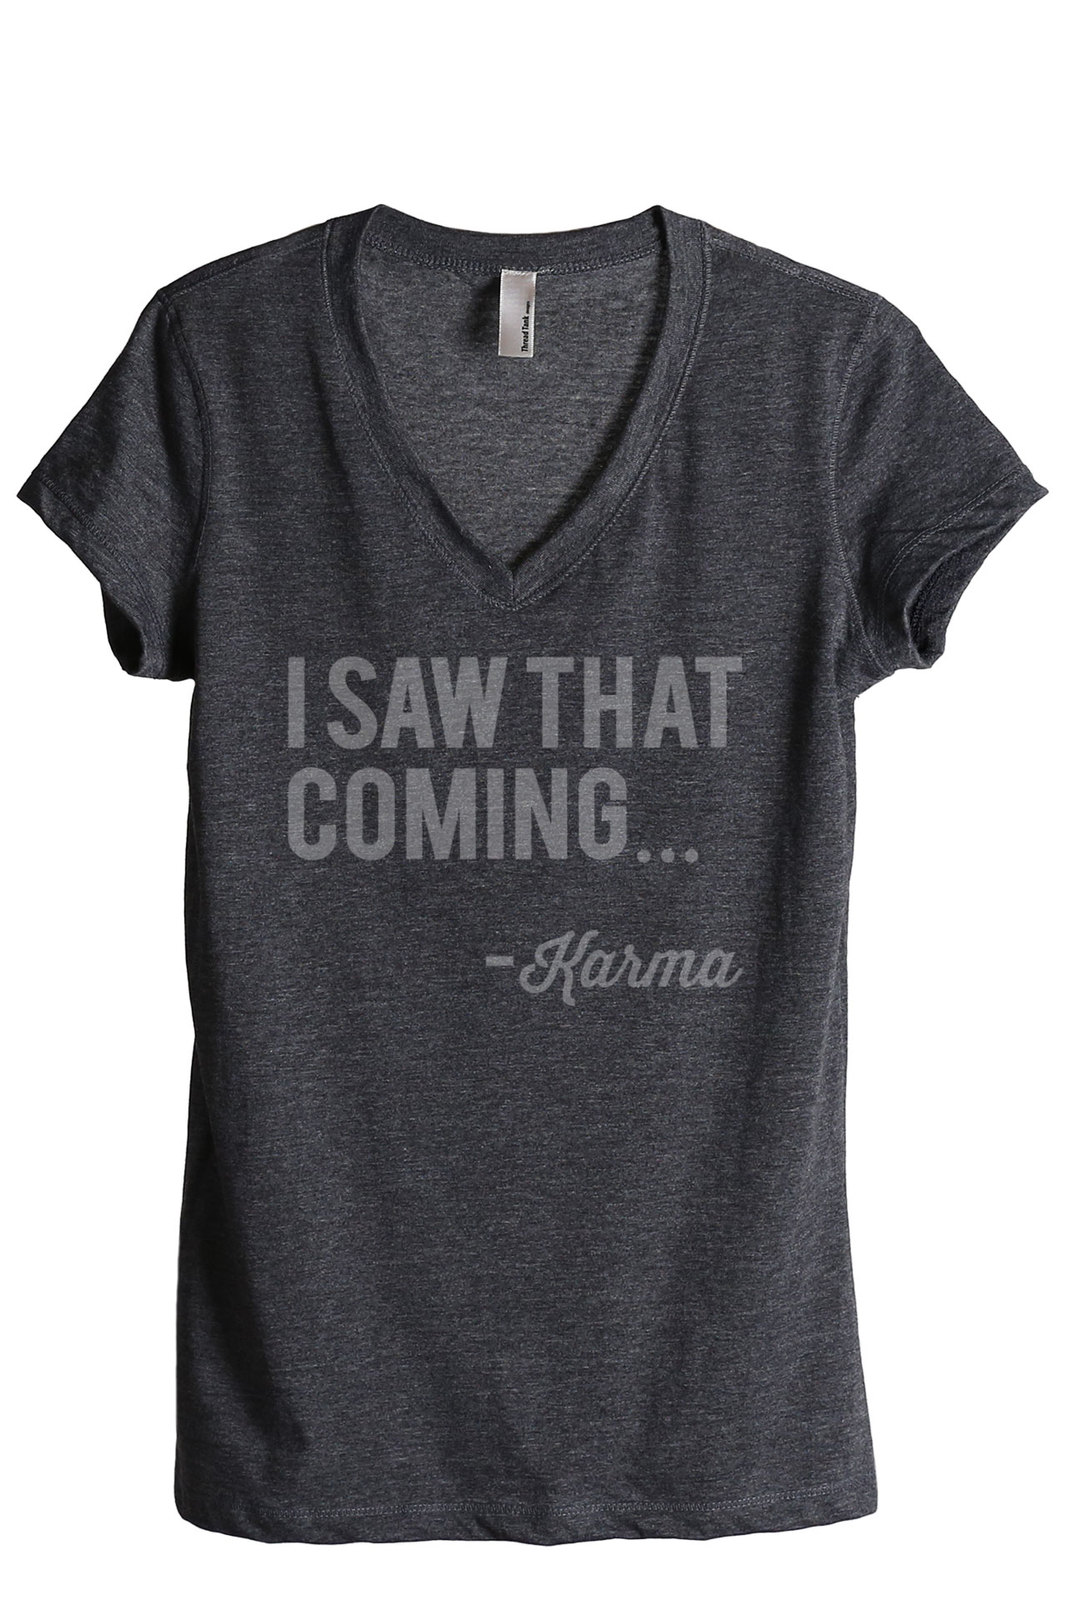 Thread Tank I Saw That Coming Karma Women's Relaxed V-Neck T-Shirt Tee Charcoal